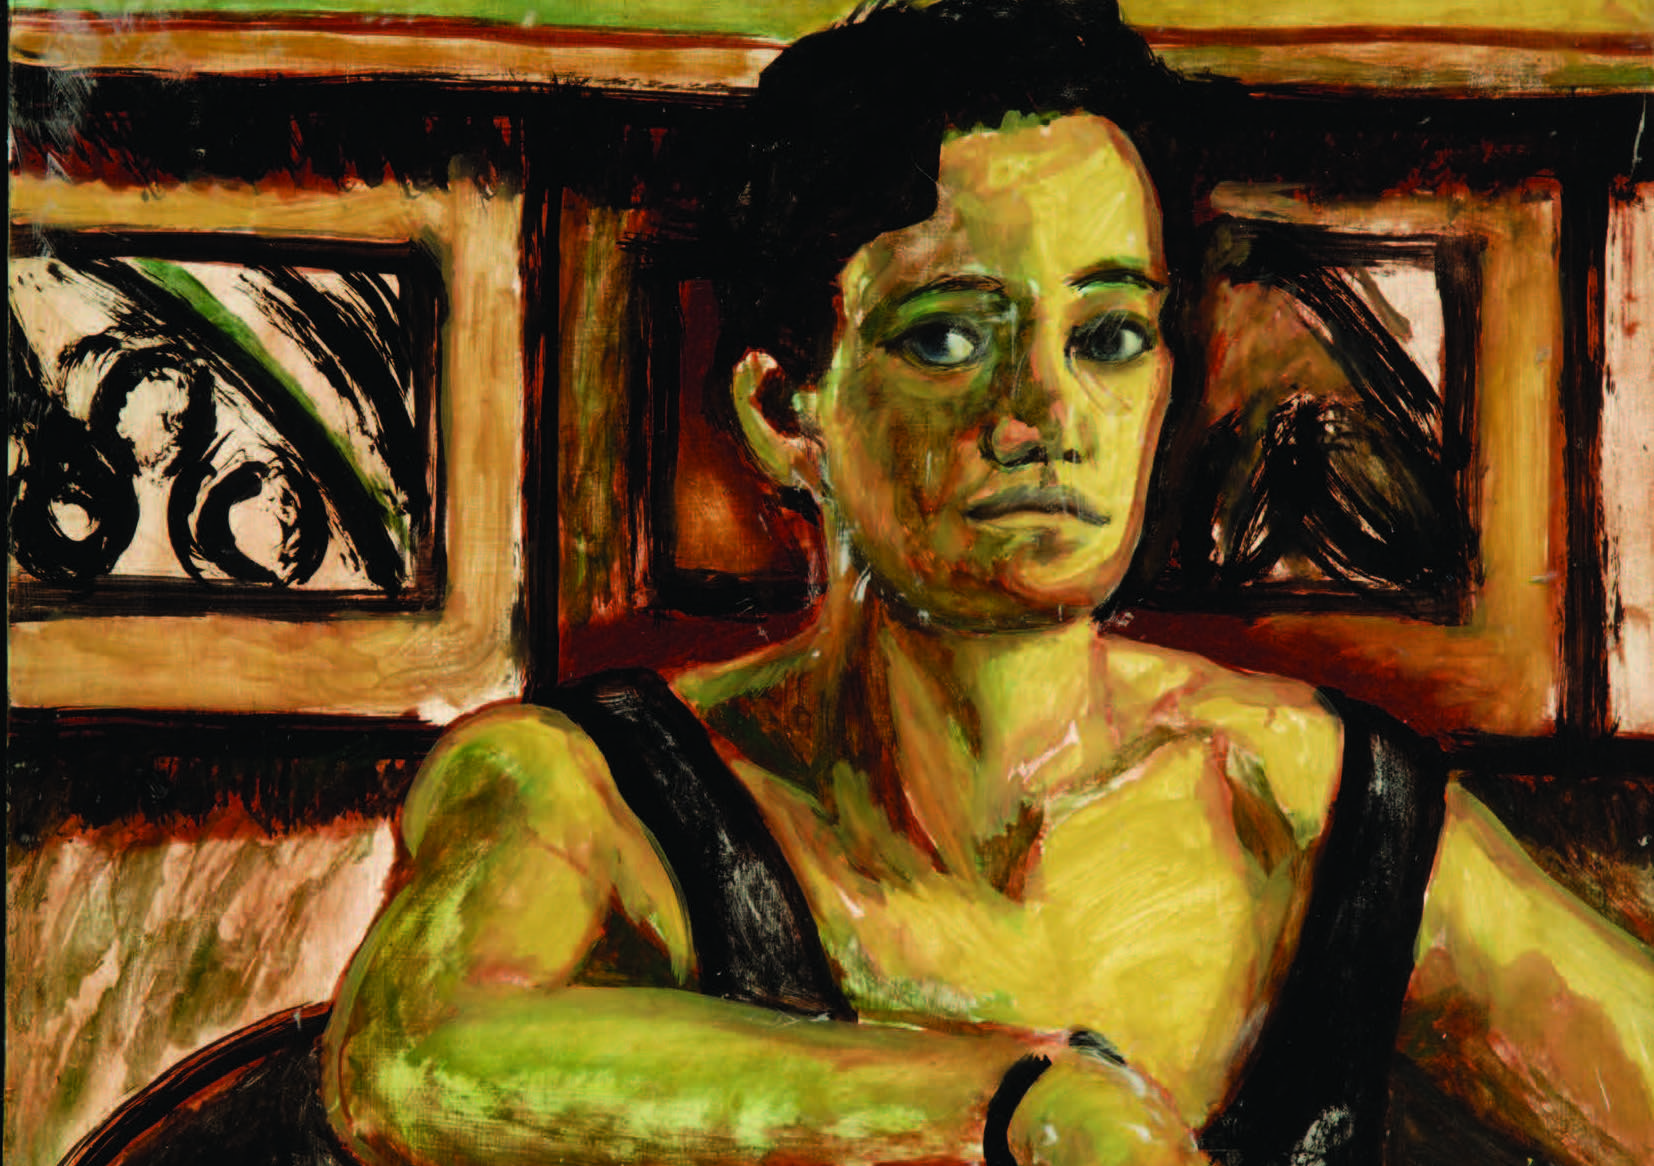 Tania Ferrier, Self Portrait (detail), 1985, oil on board, 41.5 x 54.5cm, CCWA 625. Cruthers Collection of Women's Art, The University of Western Australia. © Courtesy the artist